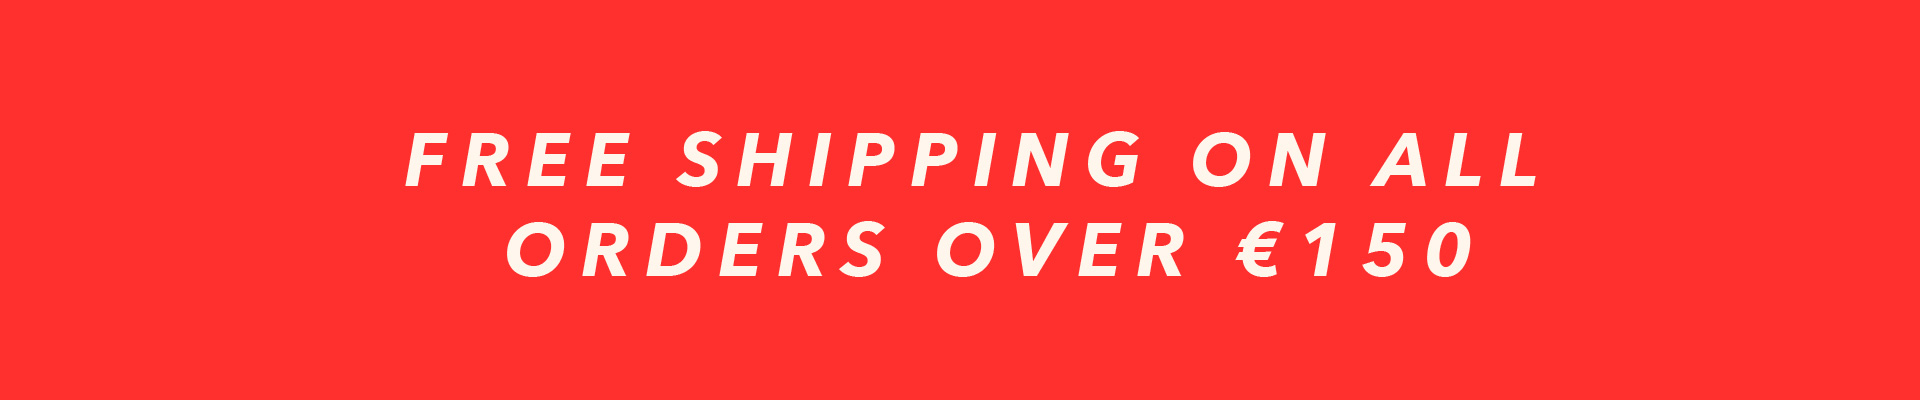 free shipping on orders over 150€